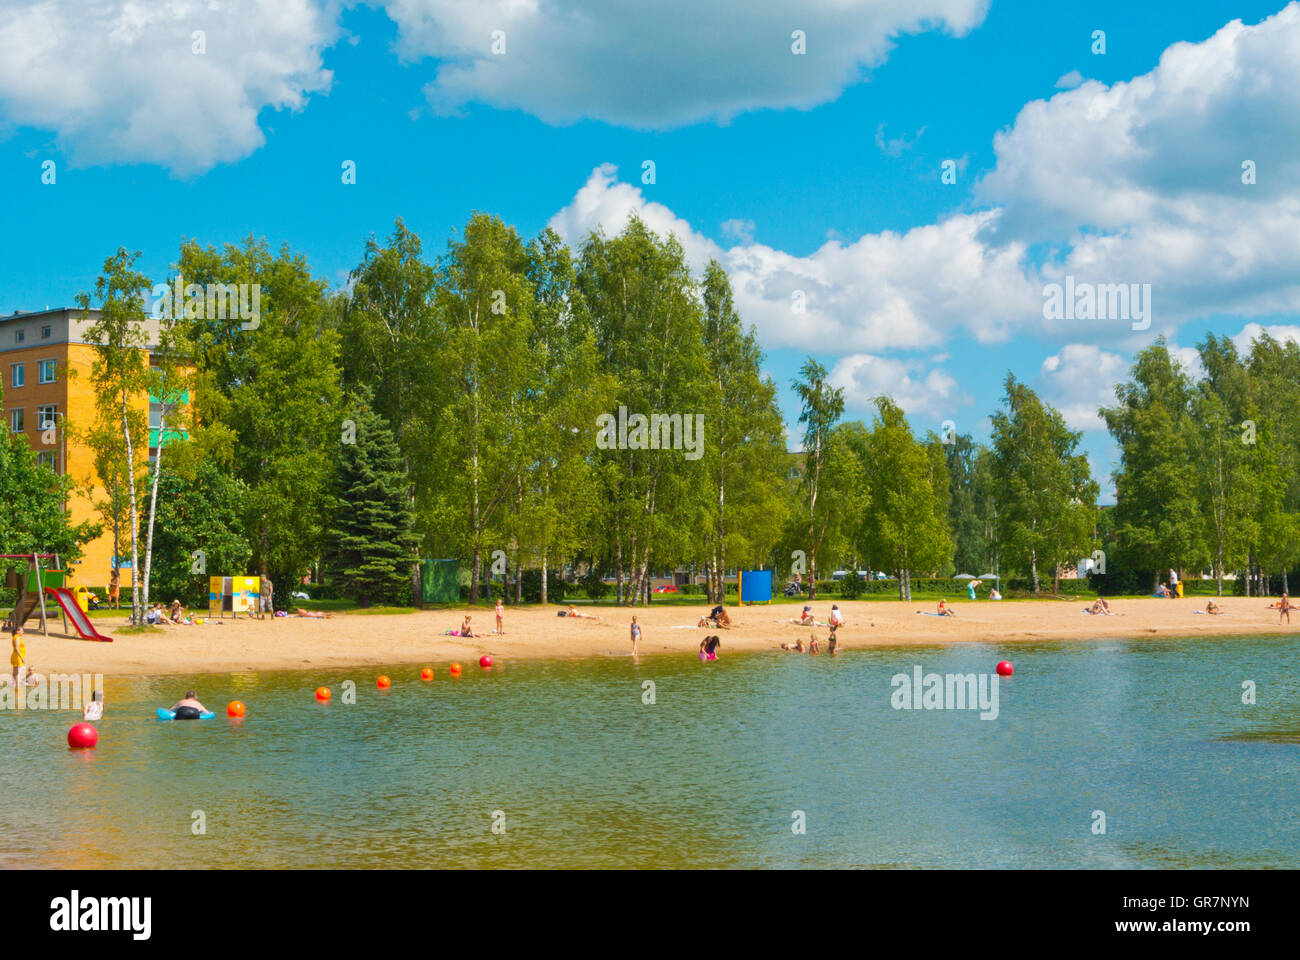 Anne kanali ujula, beach, at Anne kanal, artificial lake, Annelinn district, Tartu, Estonia, Baltic States, Europe - Stock Image